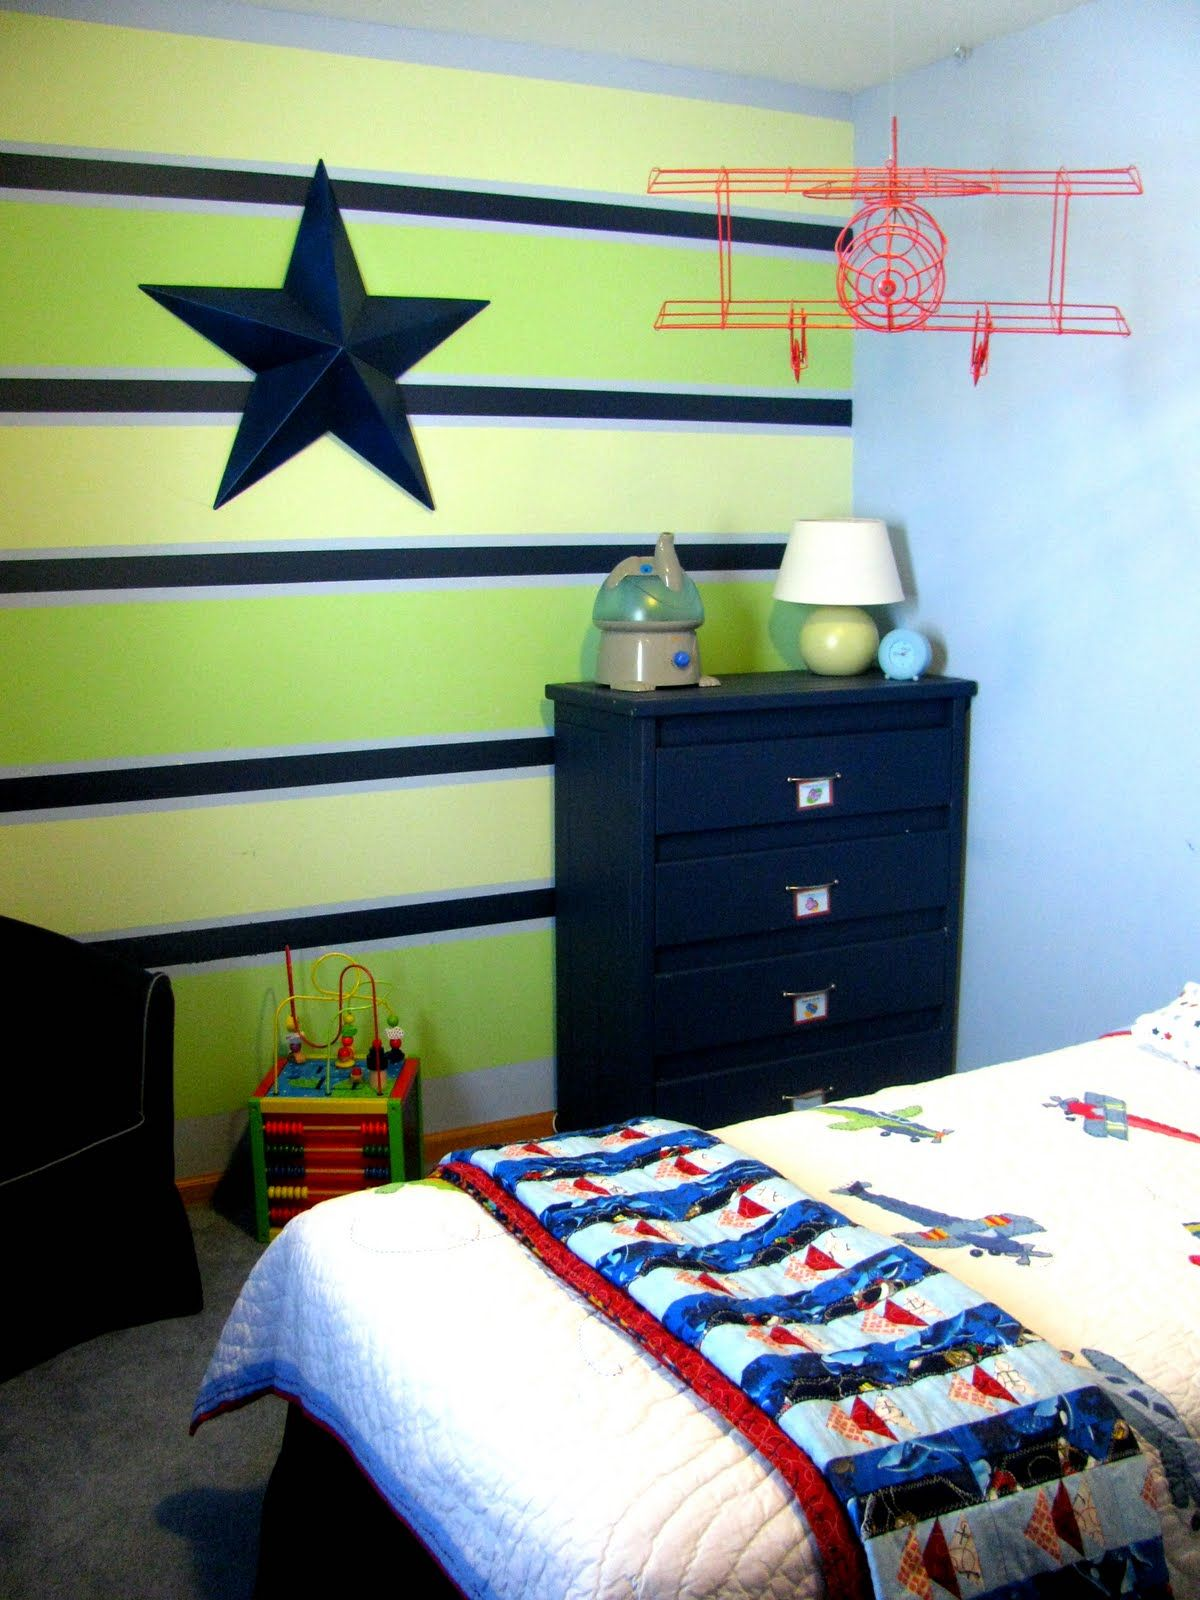 Green boys bedroom ideas - Love The Colors On That Striped Wall Boys Room Design Ideas In Dark Blue And